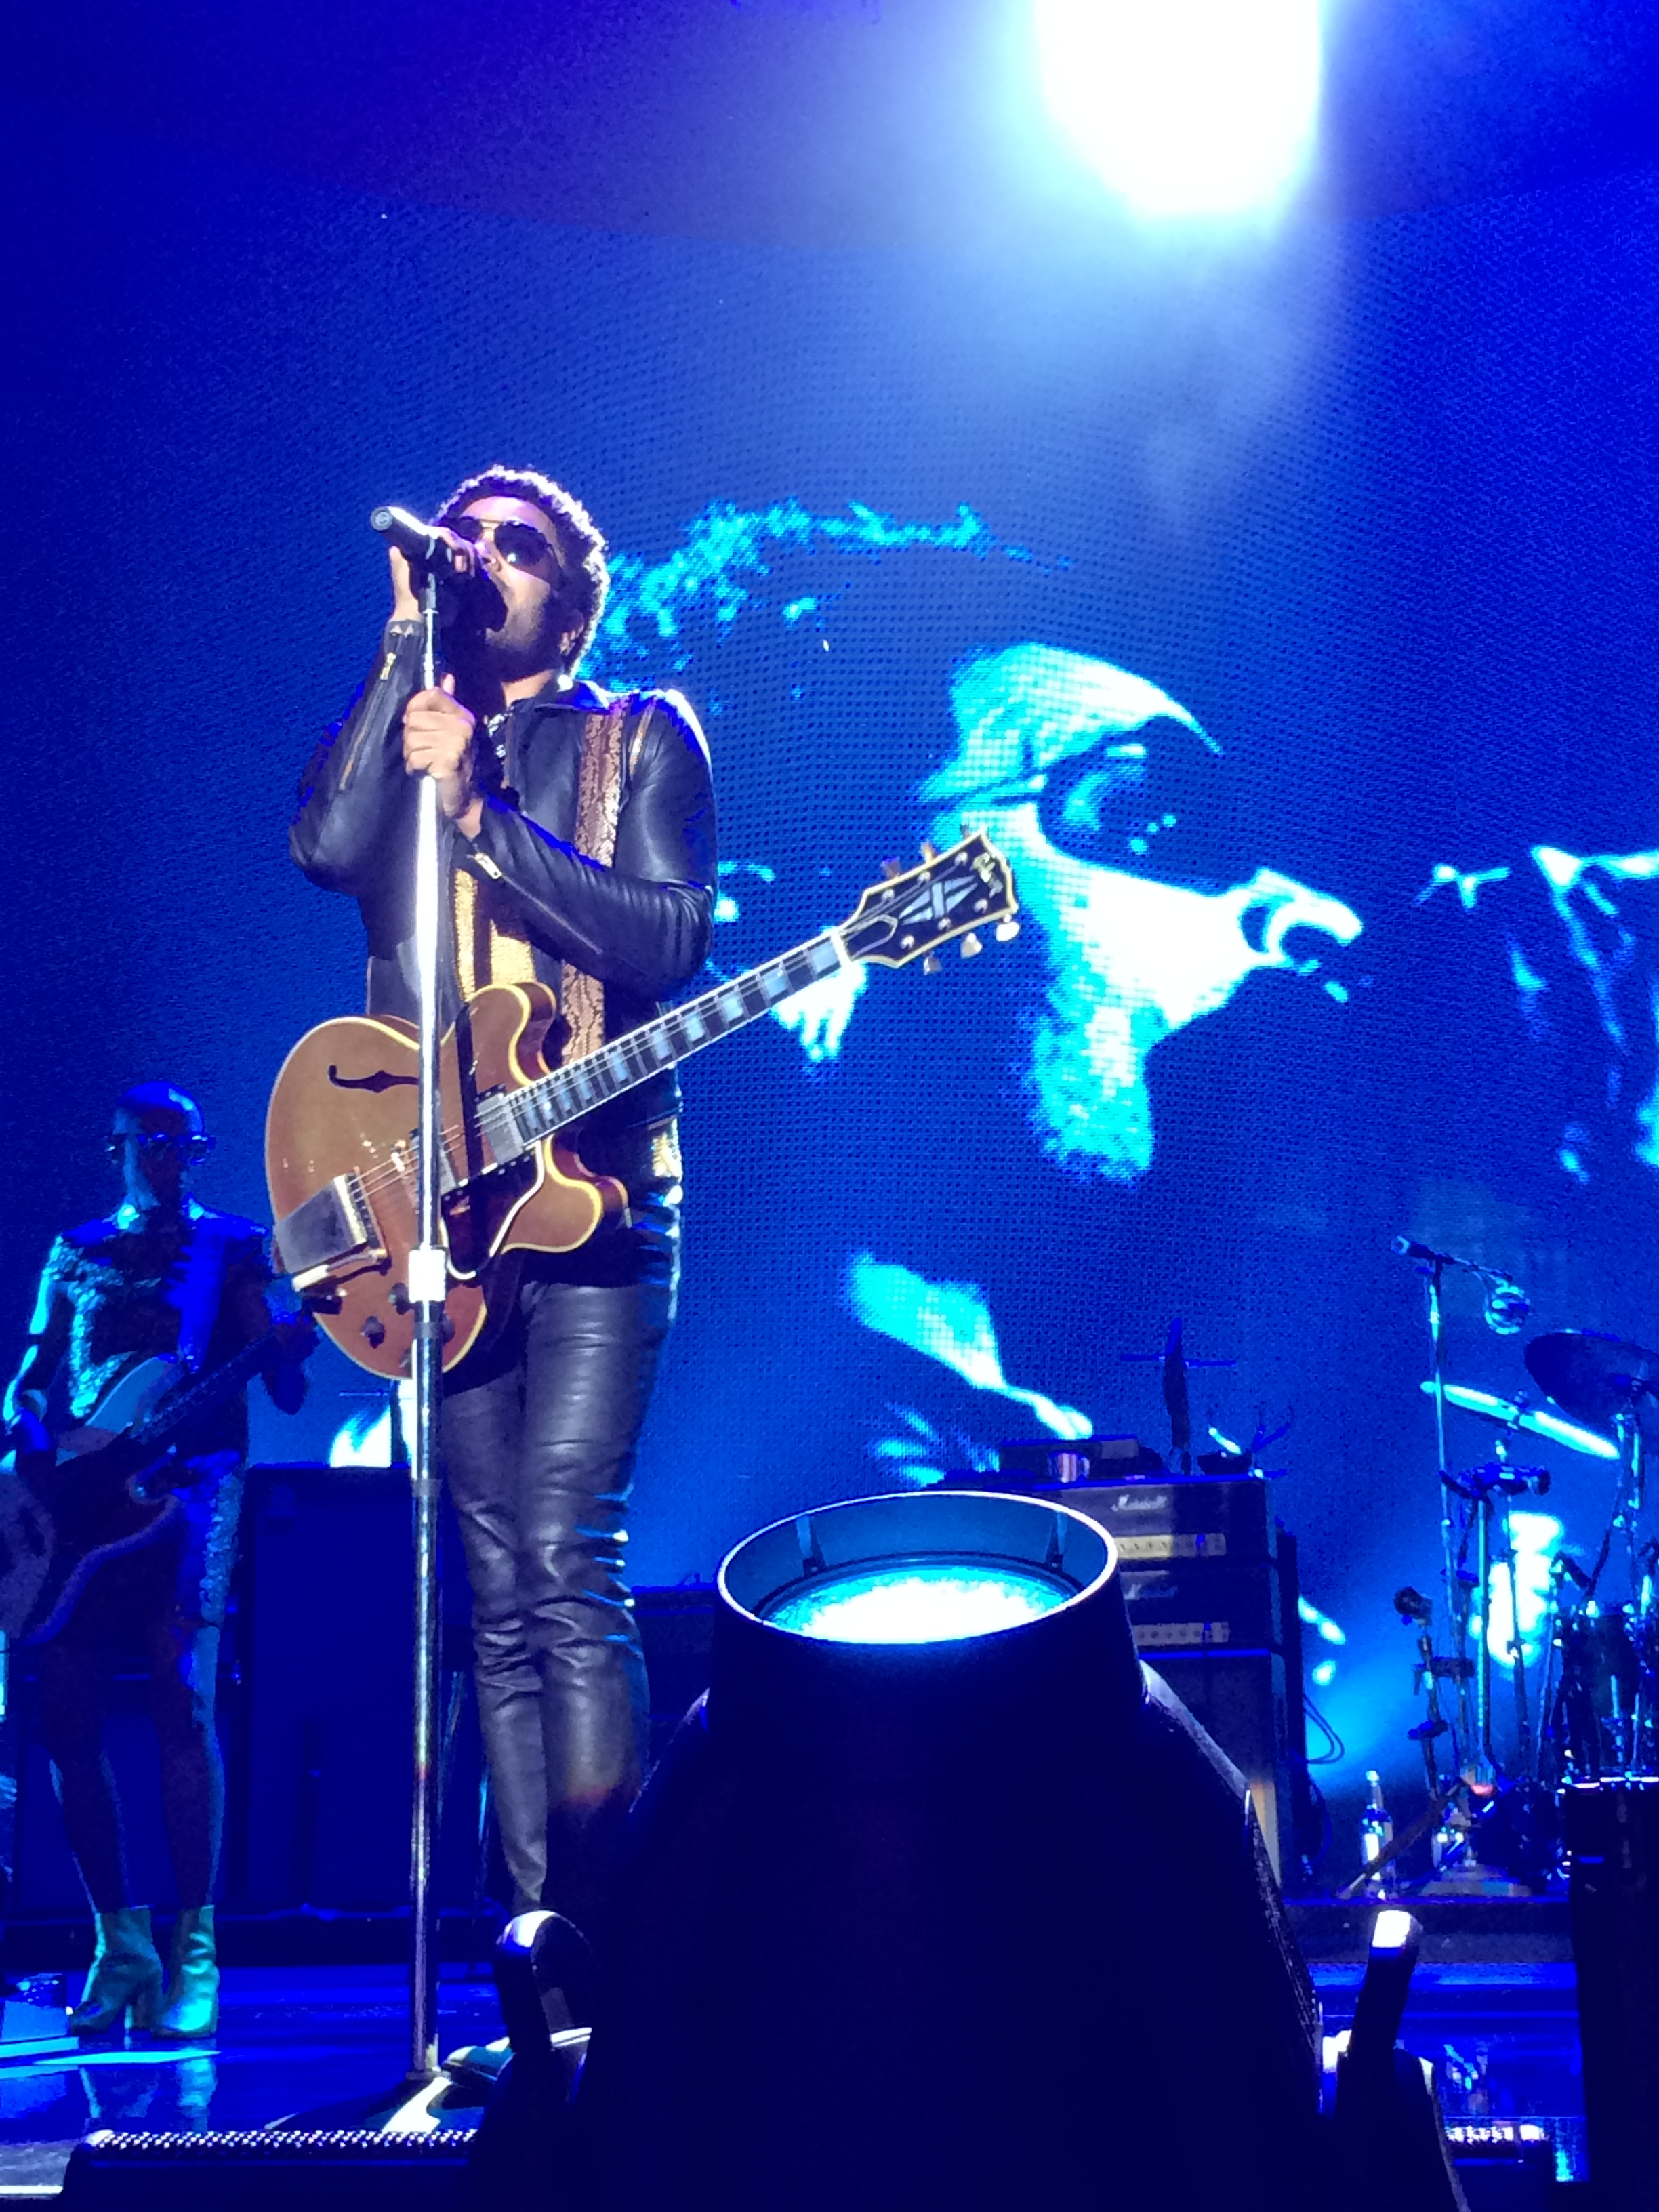 Lenny kravitz a milano it s all about love recensione for Lenny kravitz milano